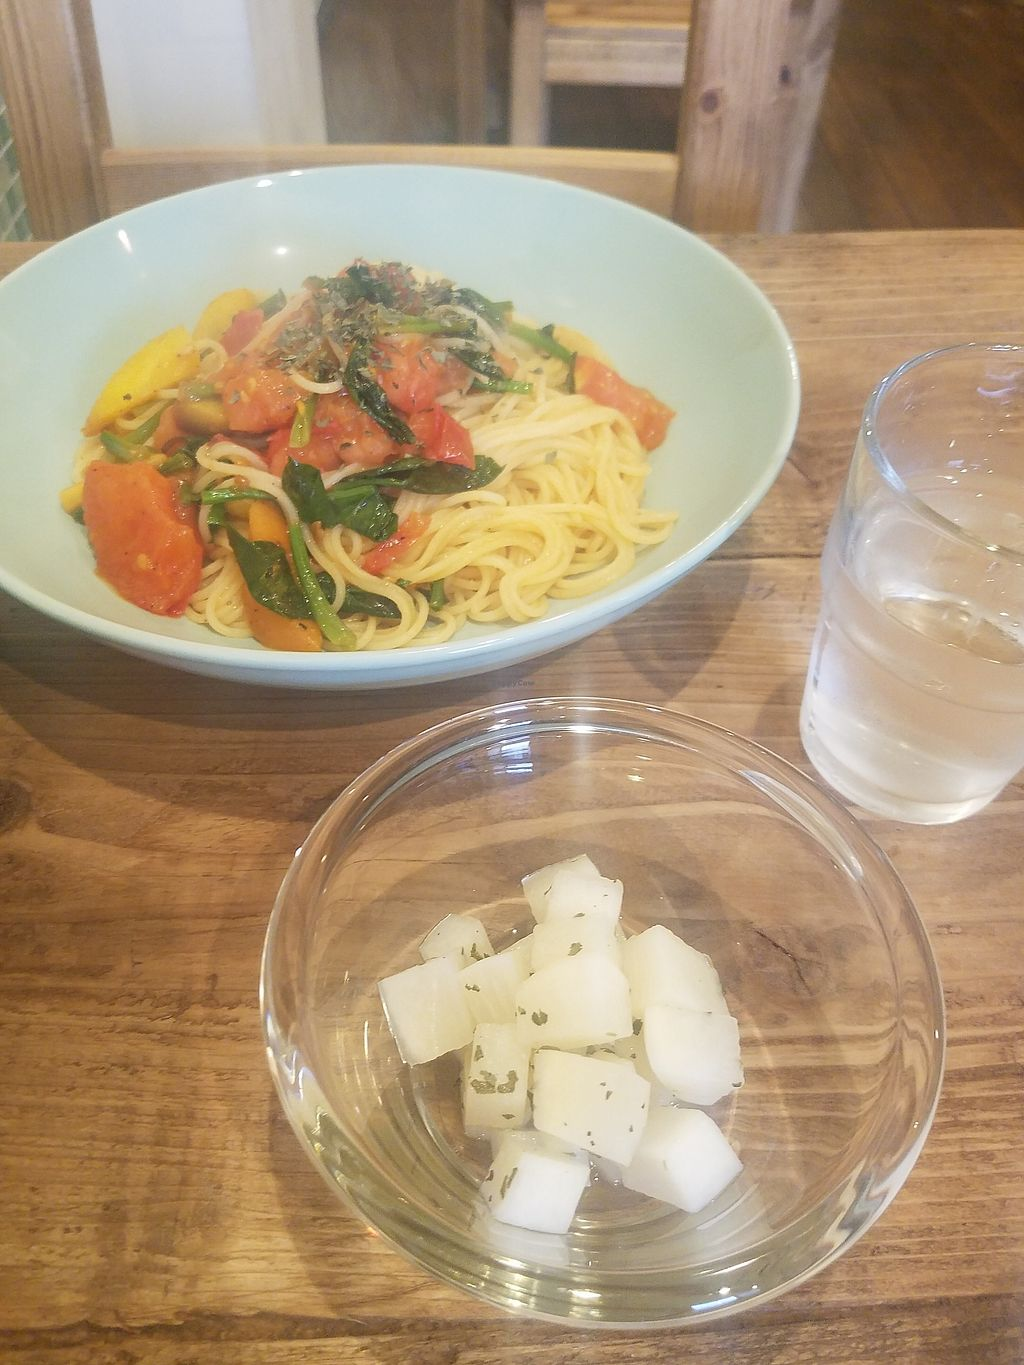 "Photo of Gorey Cafe  by <a href=""/members/profile/ReiAmber"">ReiAmber</a> <br/>local vegetable pasta and daikon salad <br/> February 18, 2018  - <a href='/contact/abuse/image/106637/360698'>Report</a>"